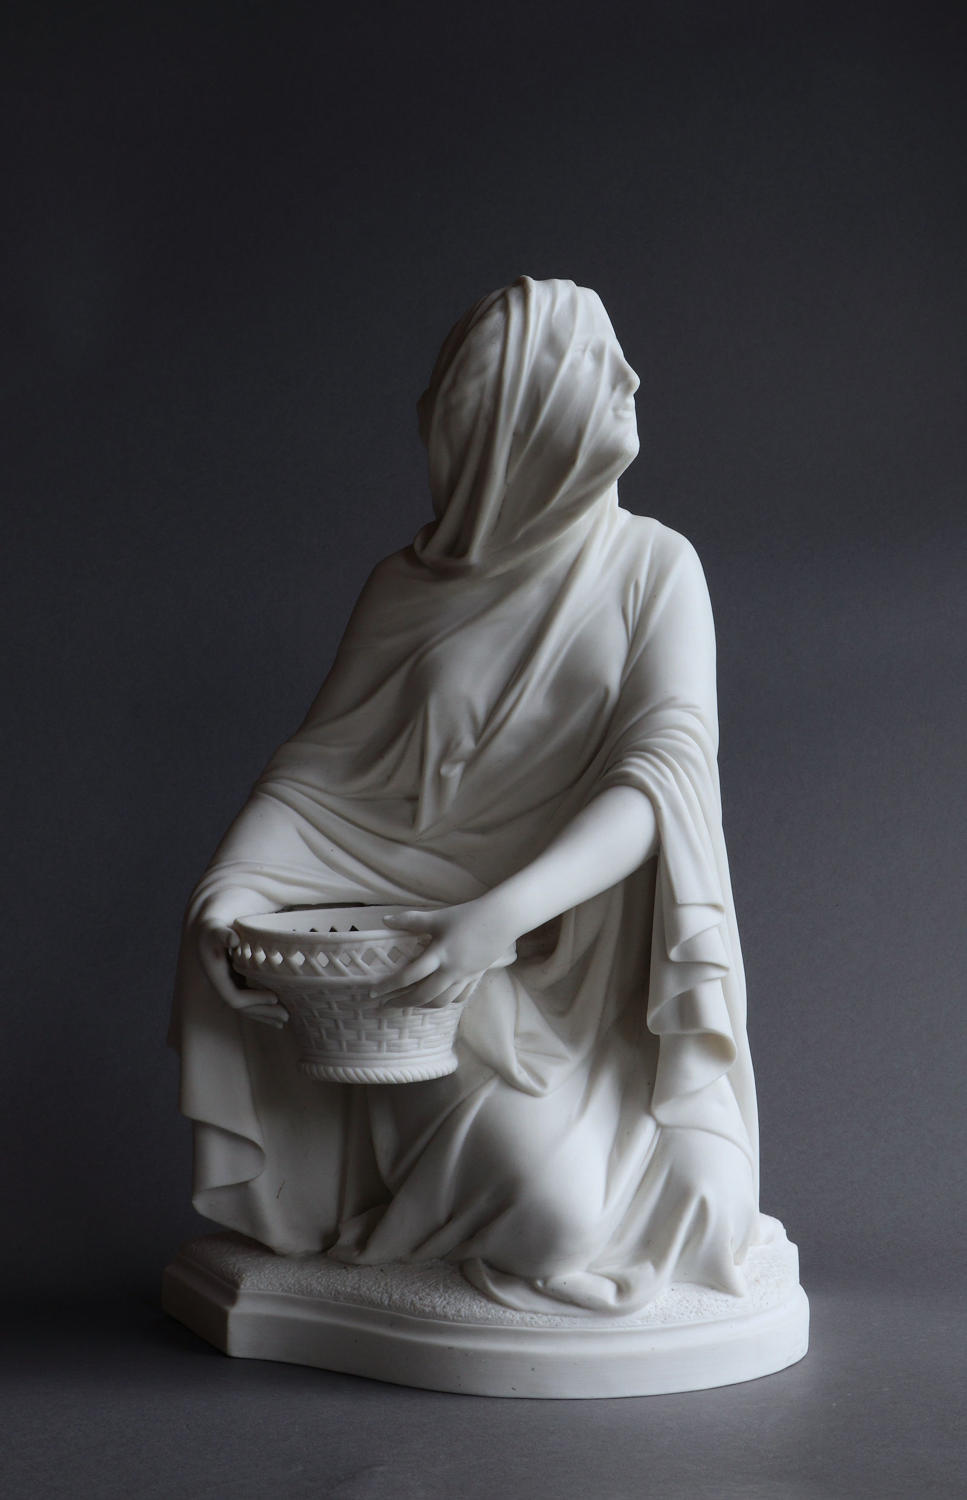 A Minton Parian figure of the Vestal Virgin by Carrier-Belleuse